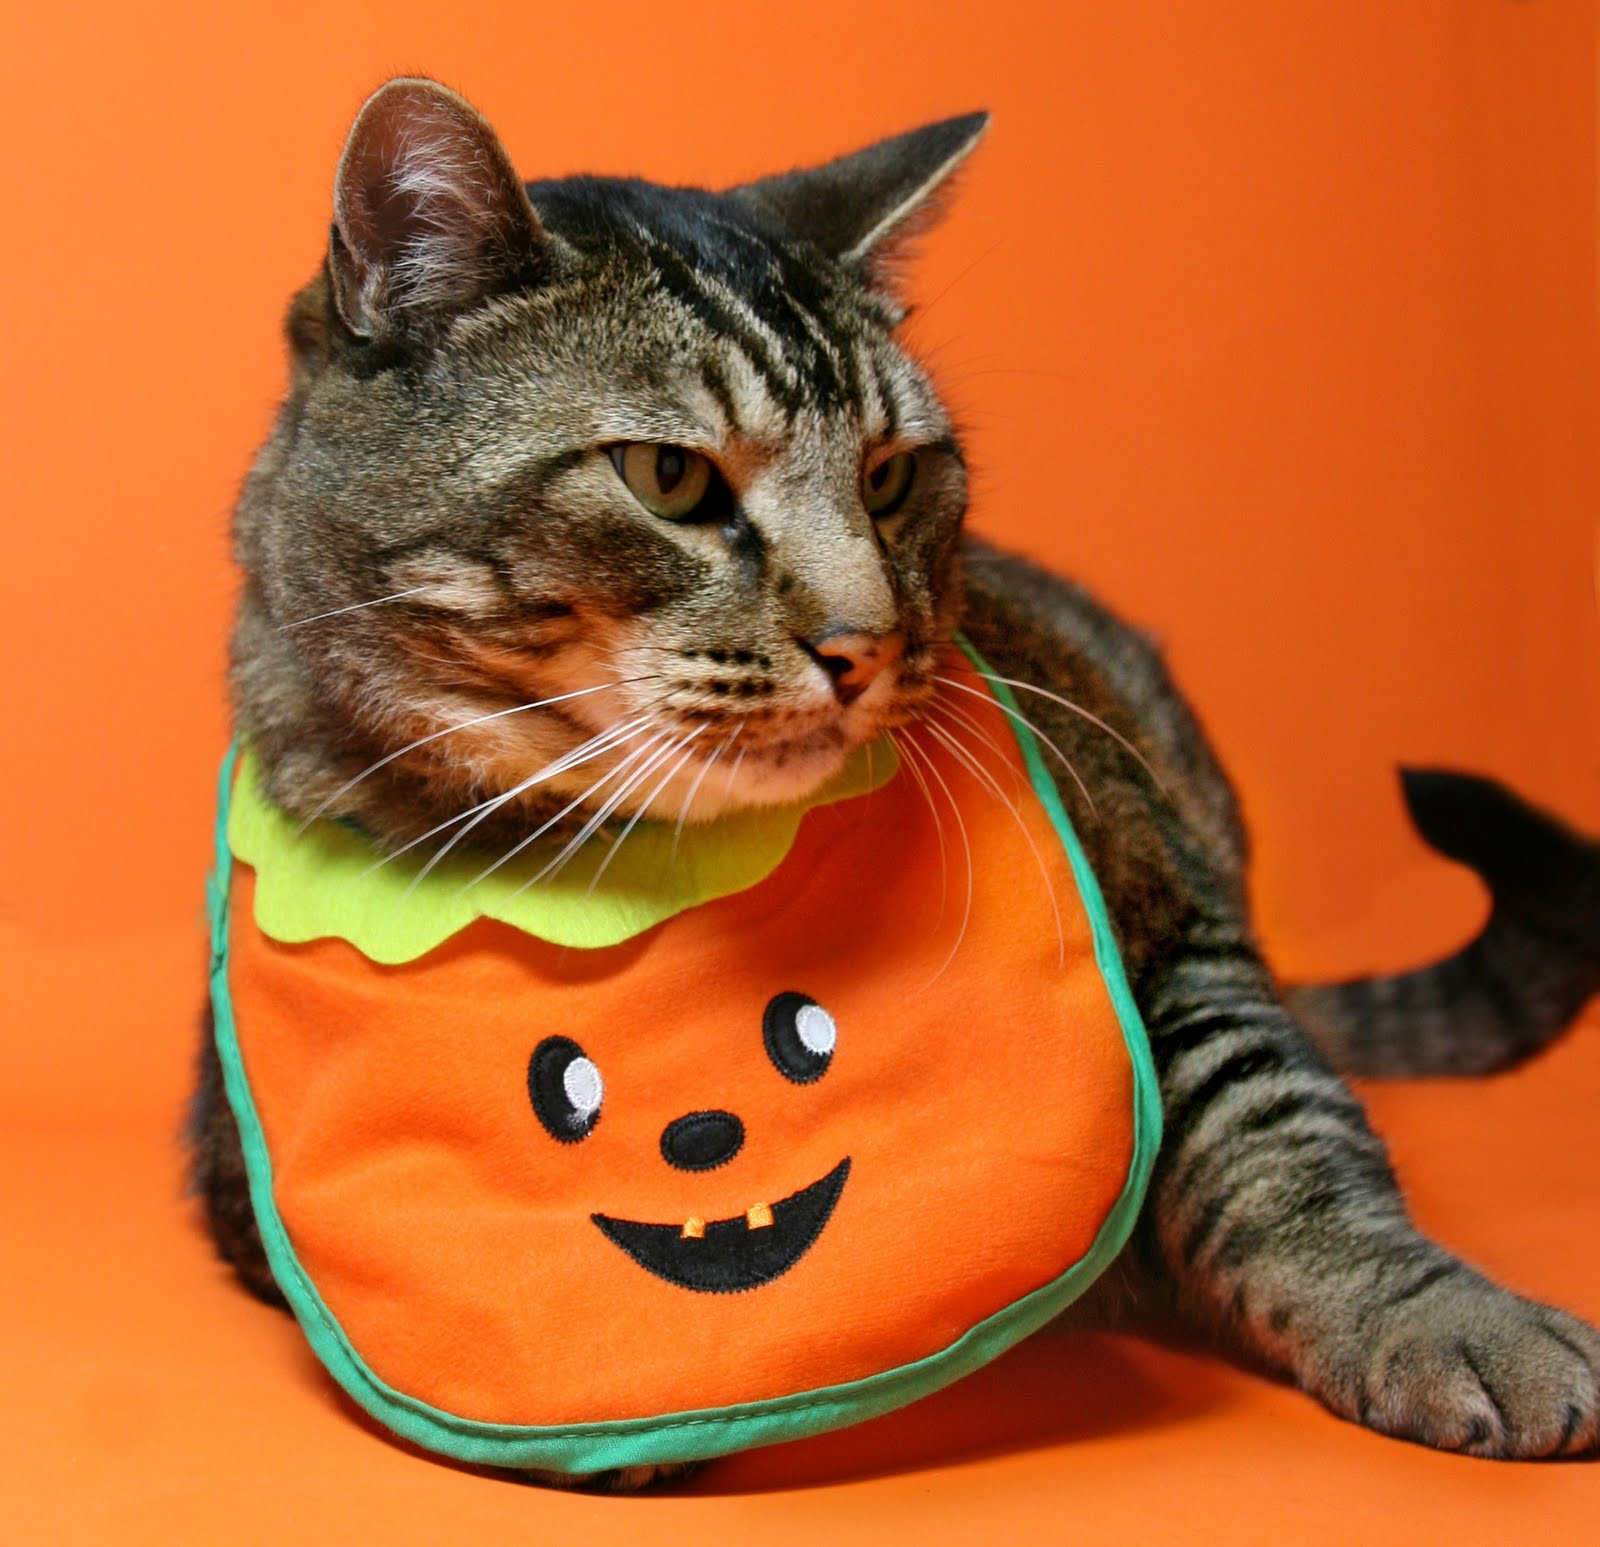 Happy Halloween Cat Countrysoldierorg Best Wallpapers 800x600 View 0 HAVE YOO EVER SEENED A MORE IMPRESSIV AND MANLY PUNKIN 1600x1547